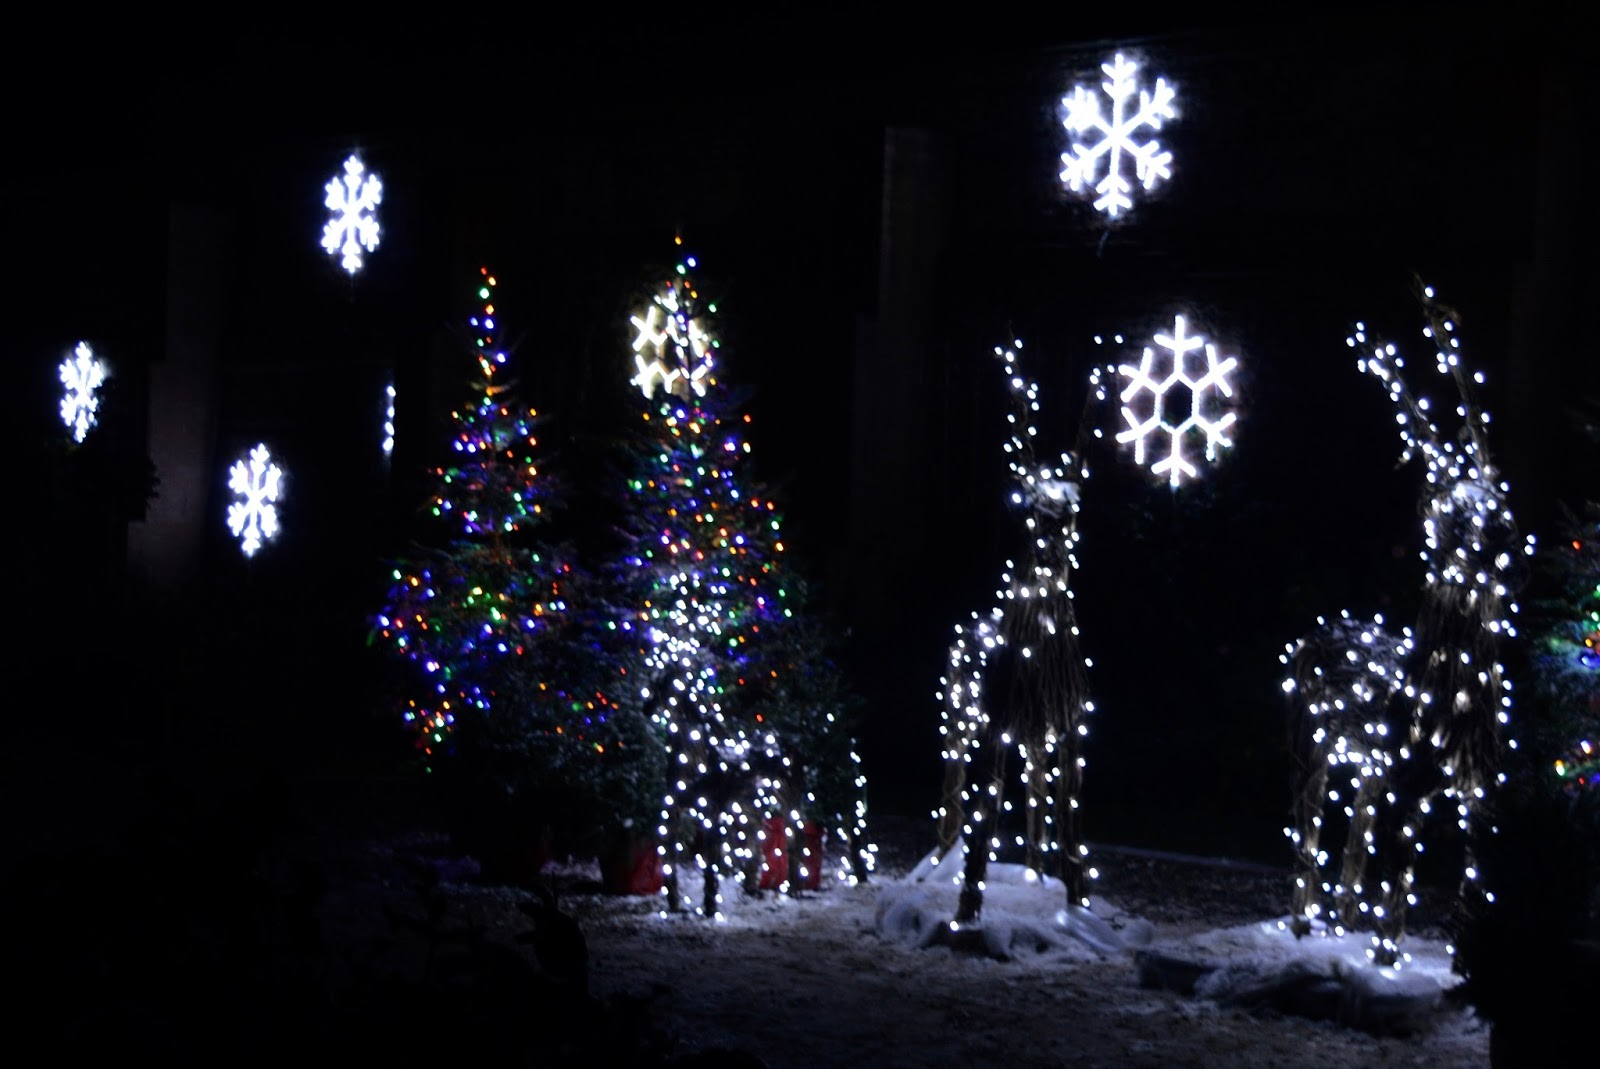 Winter Wonderland Christmas Light Show | A Wynyard Hall Garden Event - A Review - snowflakes